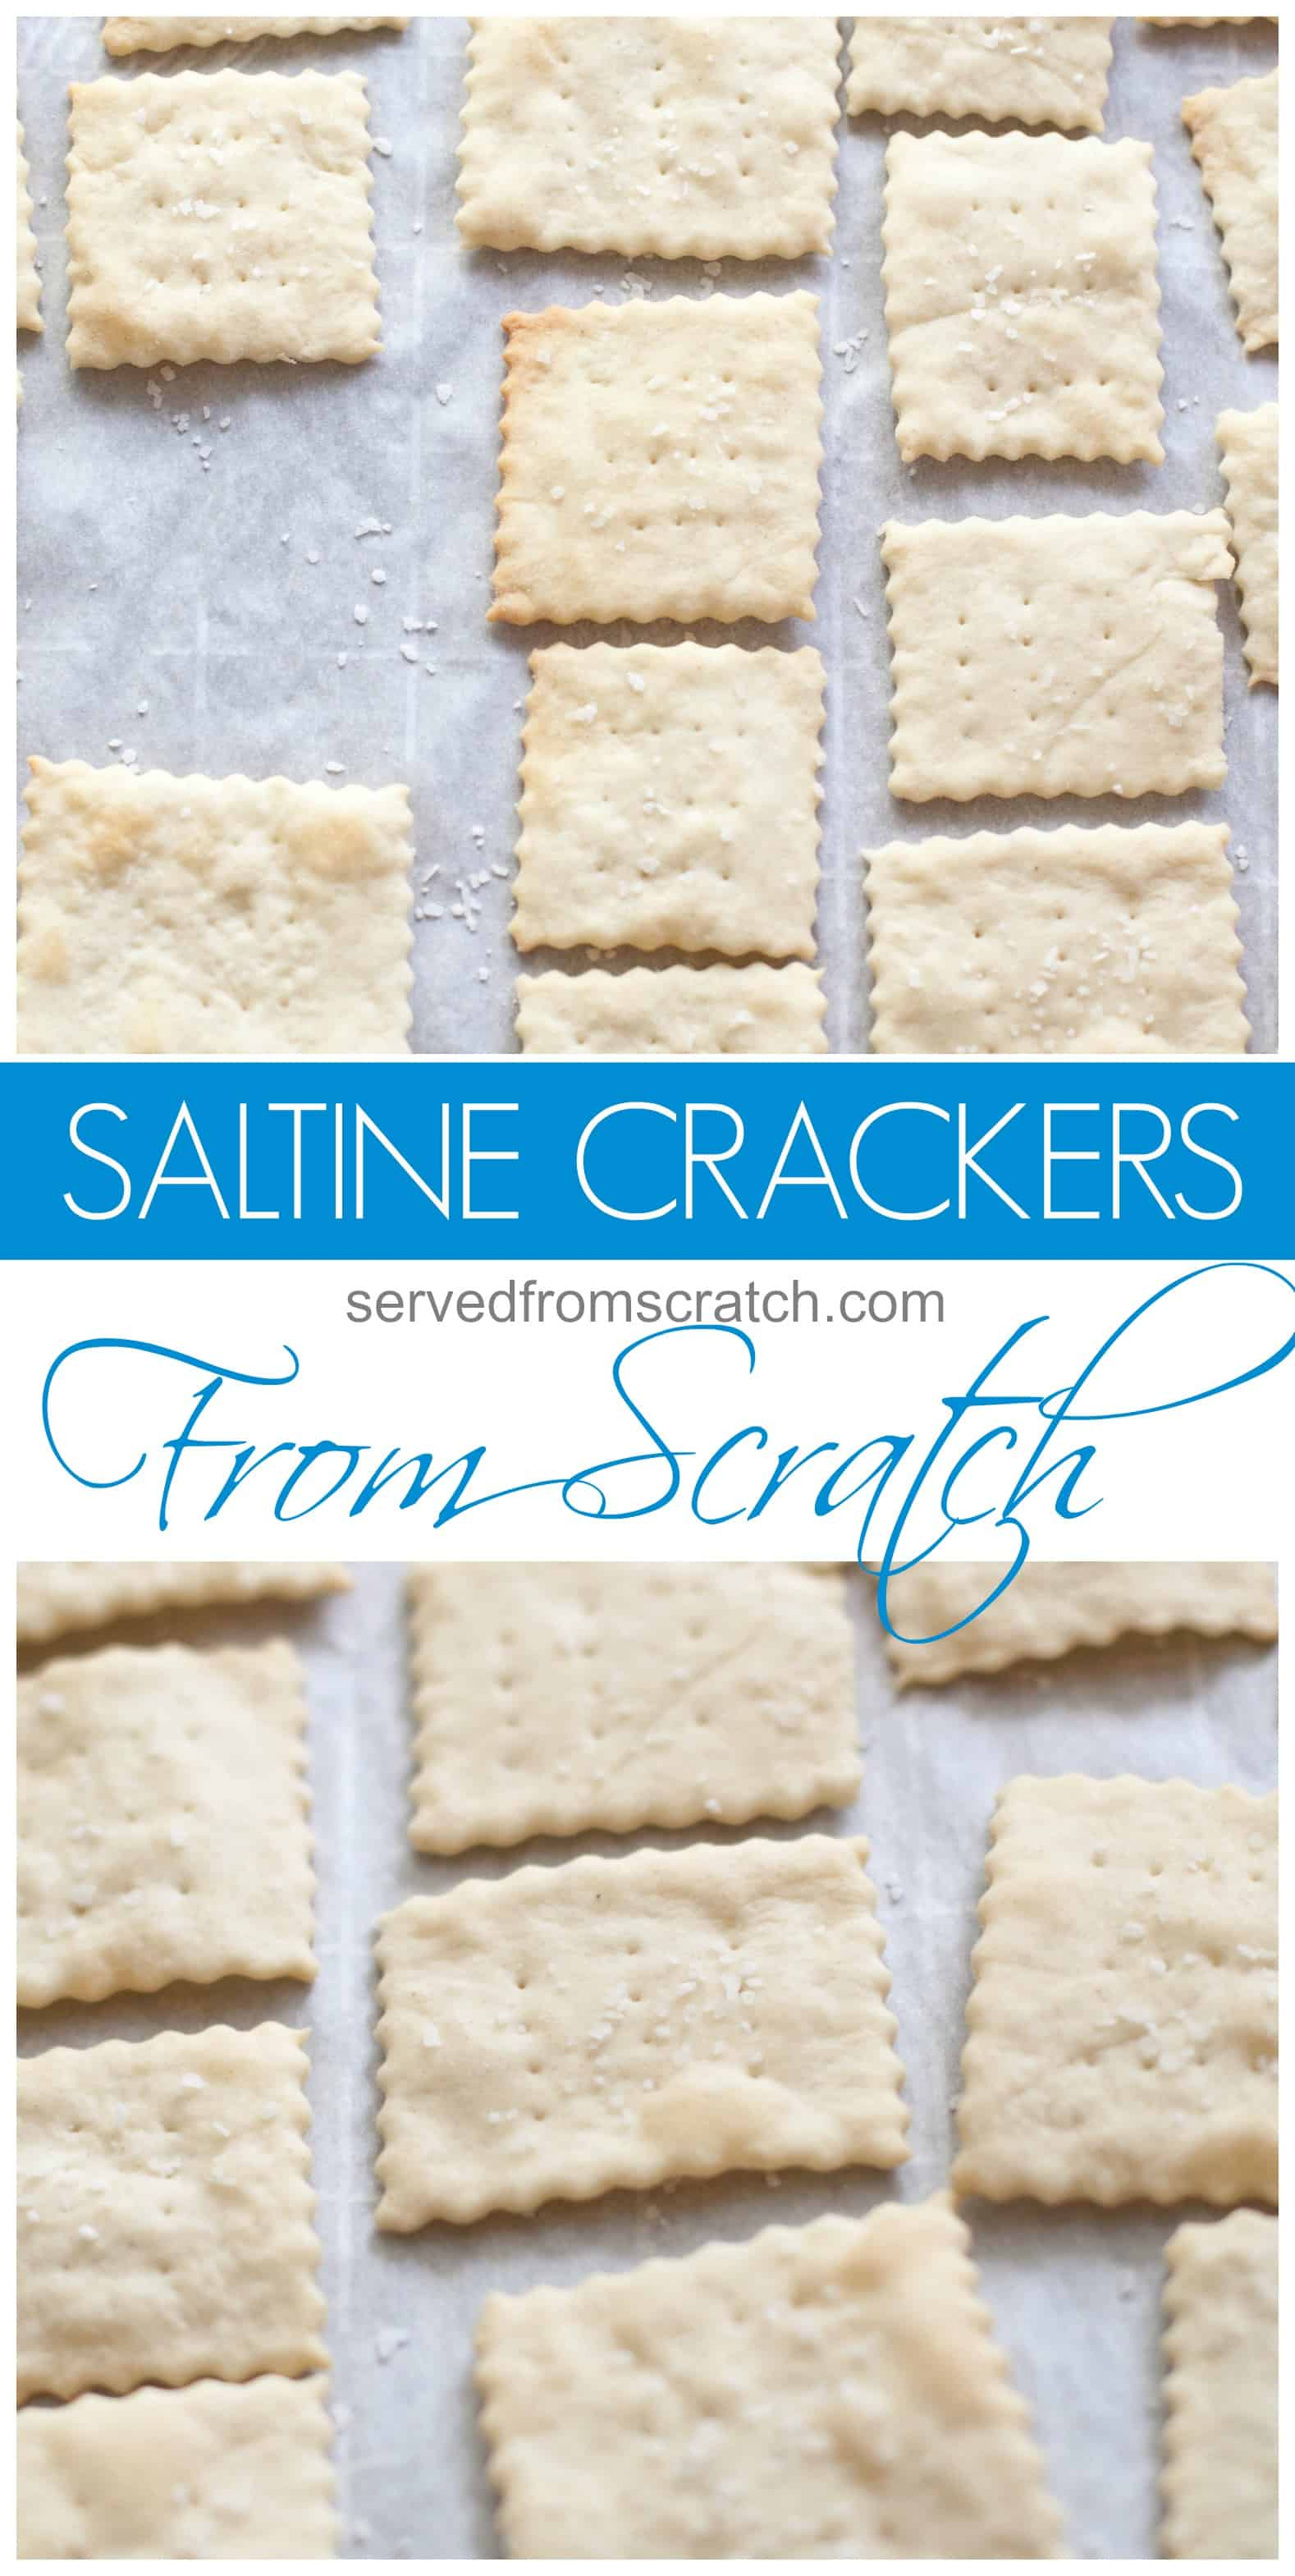 Make your own Saltine Crackers from scratch at home!